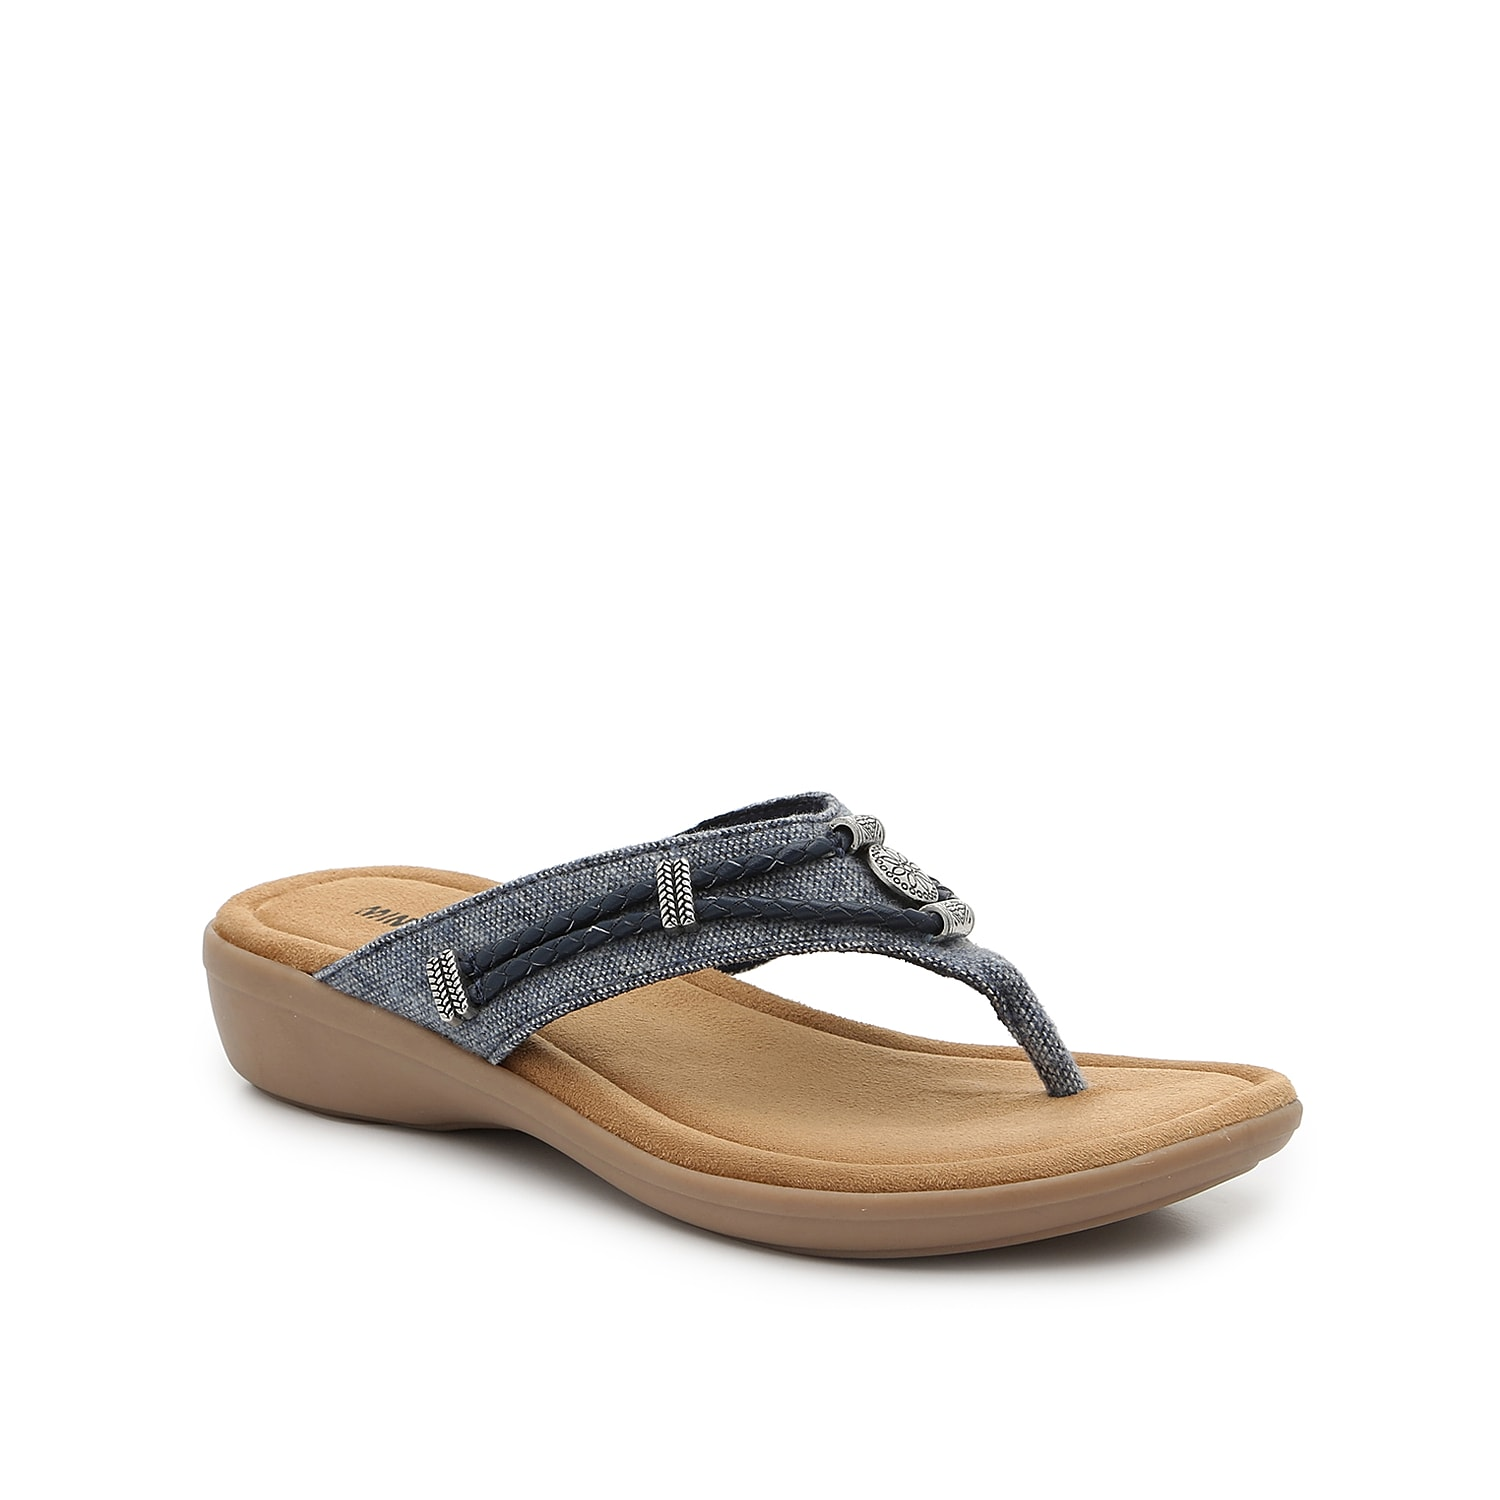 The Silverbay thong sandals by Minnetonka offer comfort and style all in one! Slide into these versatile wedges for an understated, casual look.